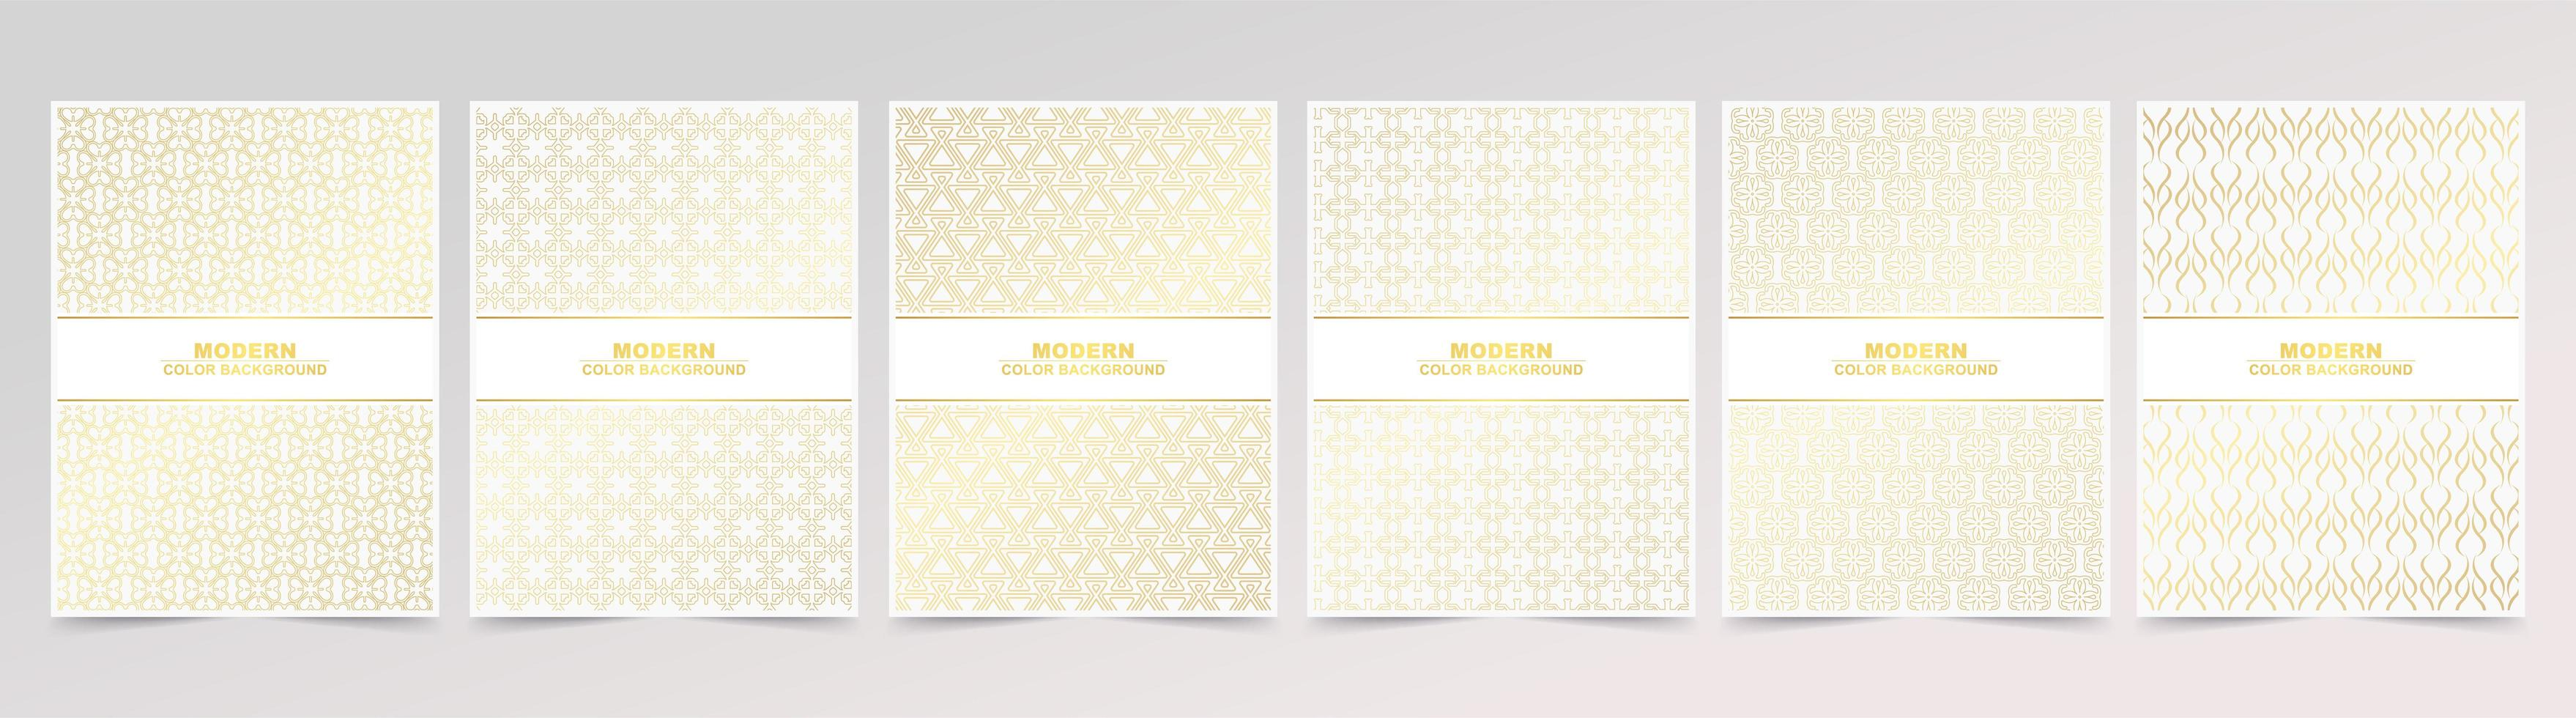 Minimal Cover in Gold Line Pattern Poster Designs vector